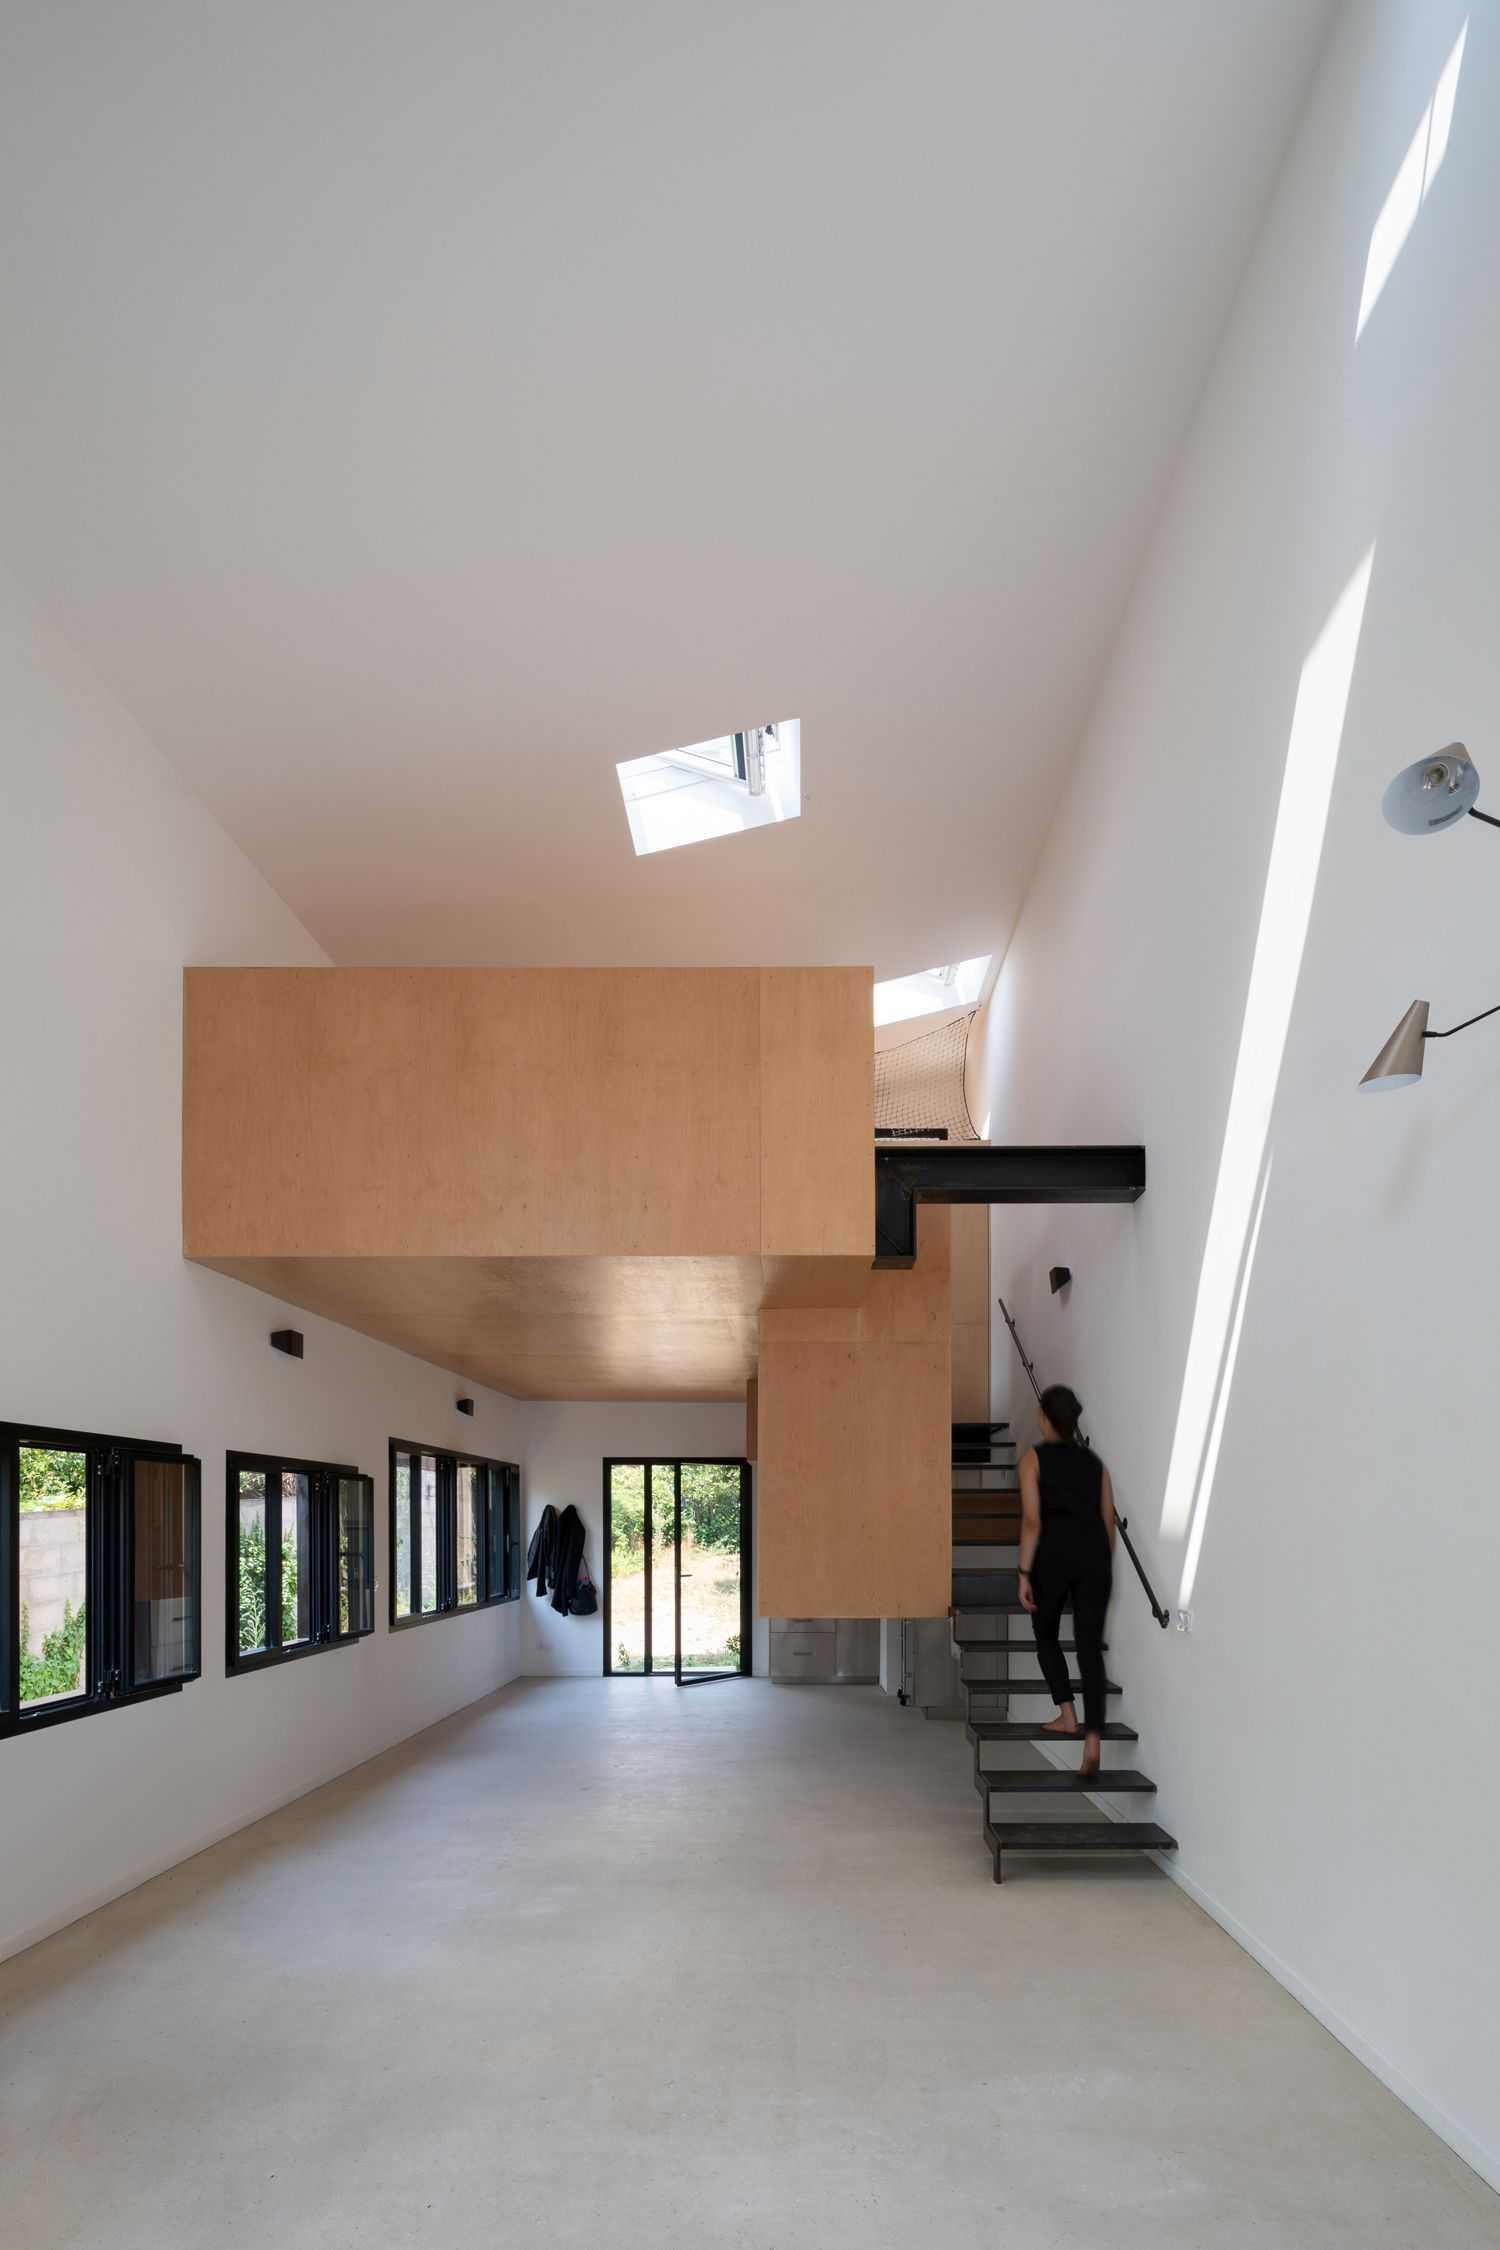 Interior of revamped studio in Montreuil, France